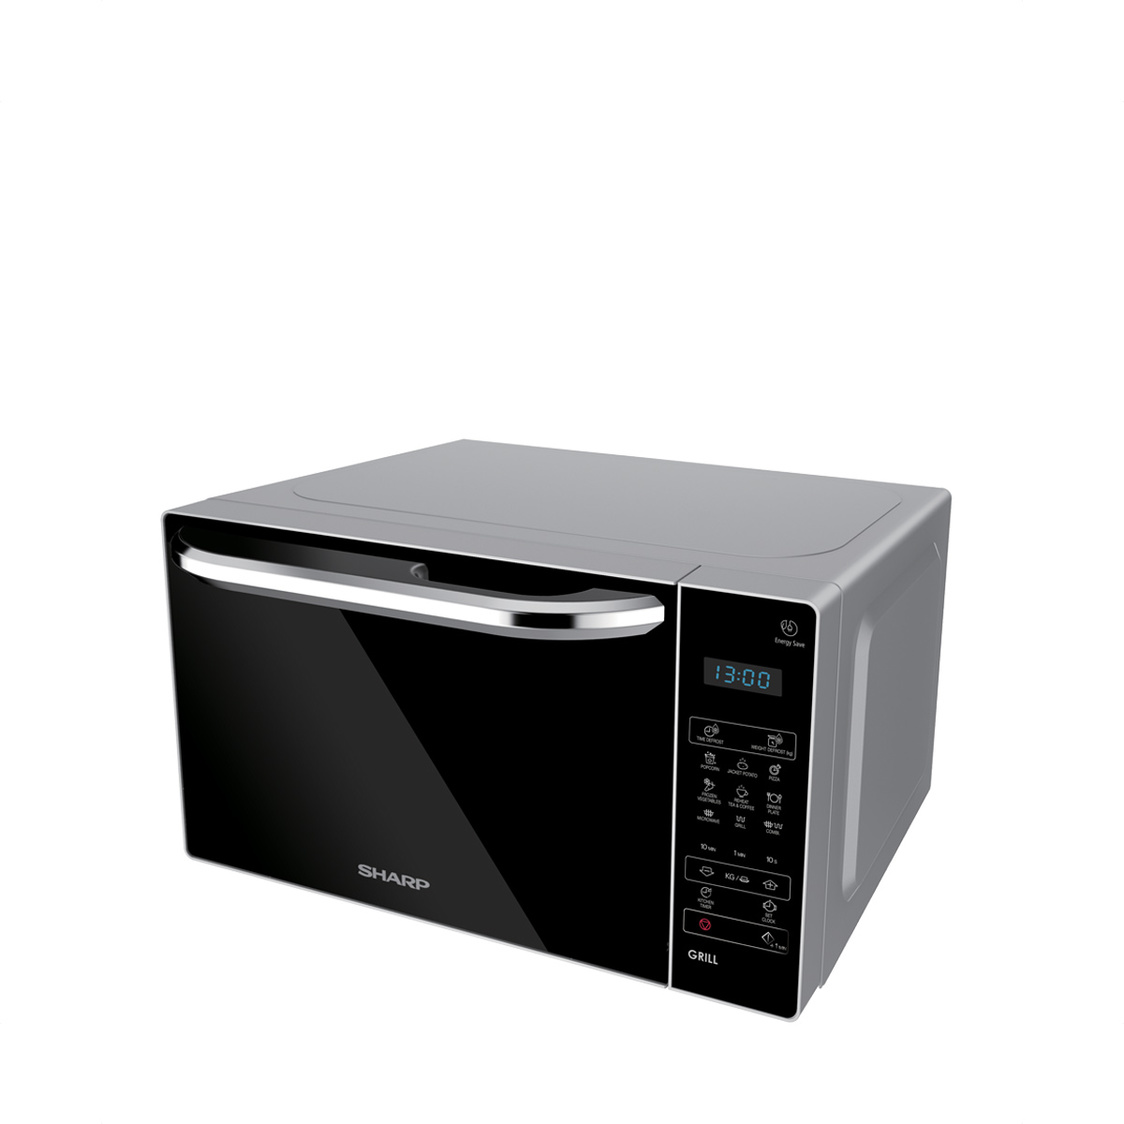 Sharp 800w Microwave Oven With Grill 20l R-62e0.